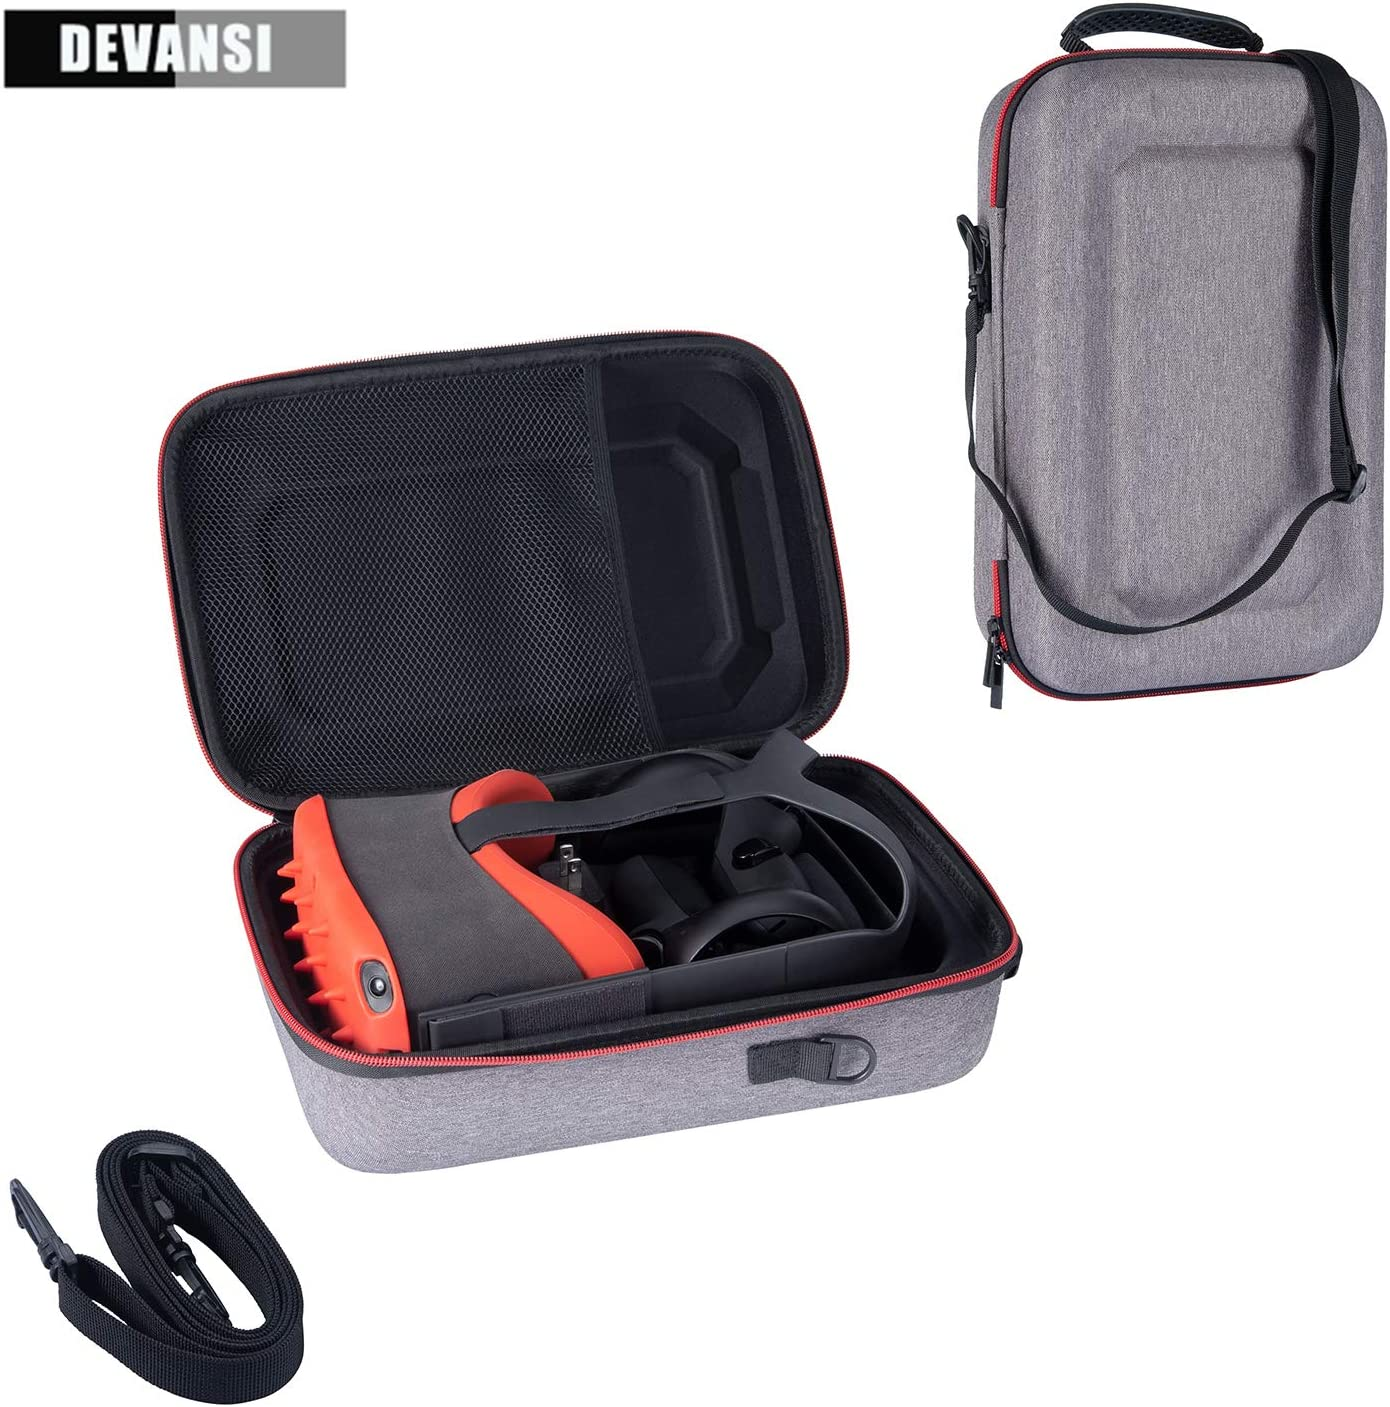 Devansi Pratical Travel Case for Oculus Quest VR Gaming Headset and Controllers Accessories Durable Carrying Bag with Straps(Grey)